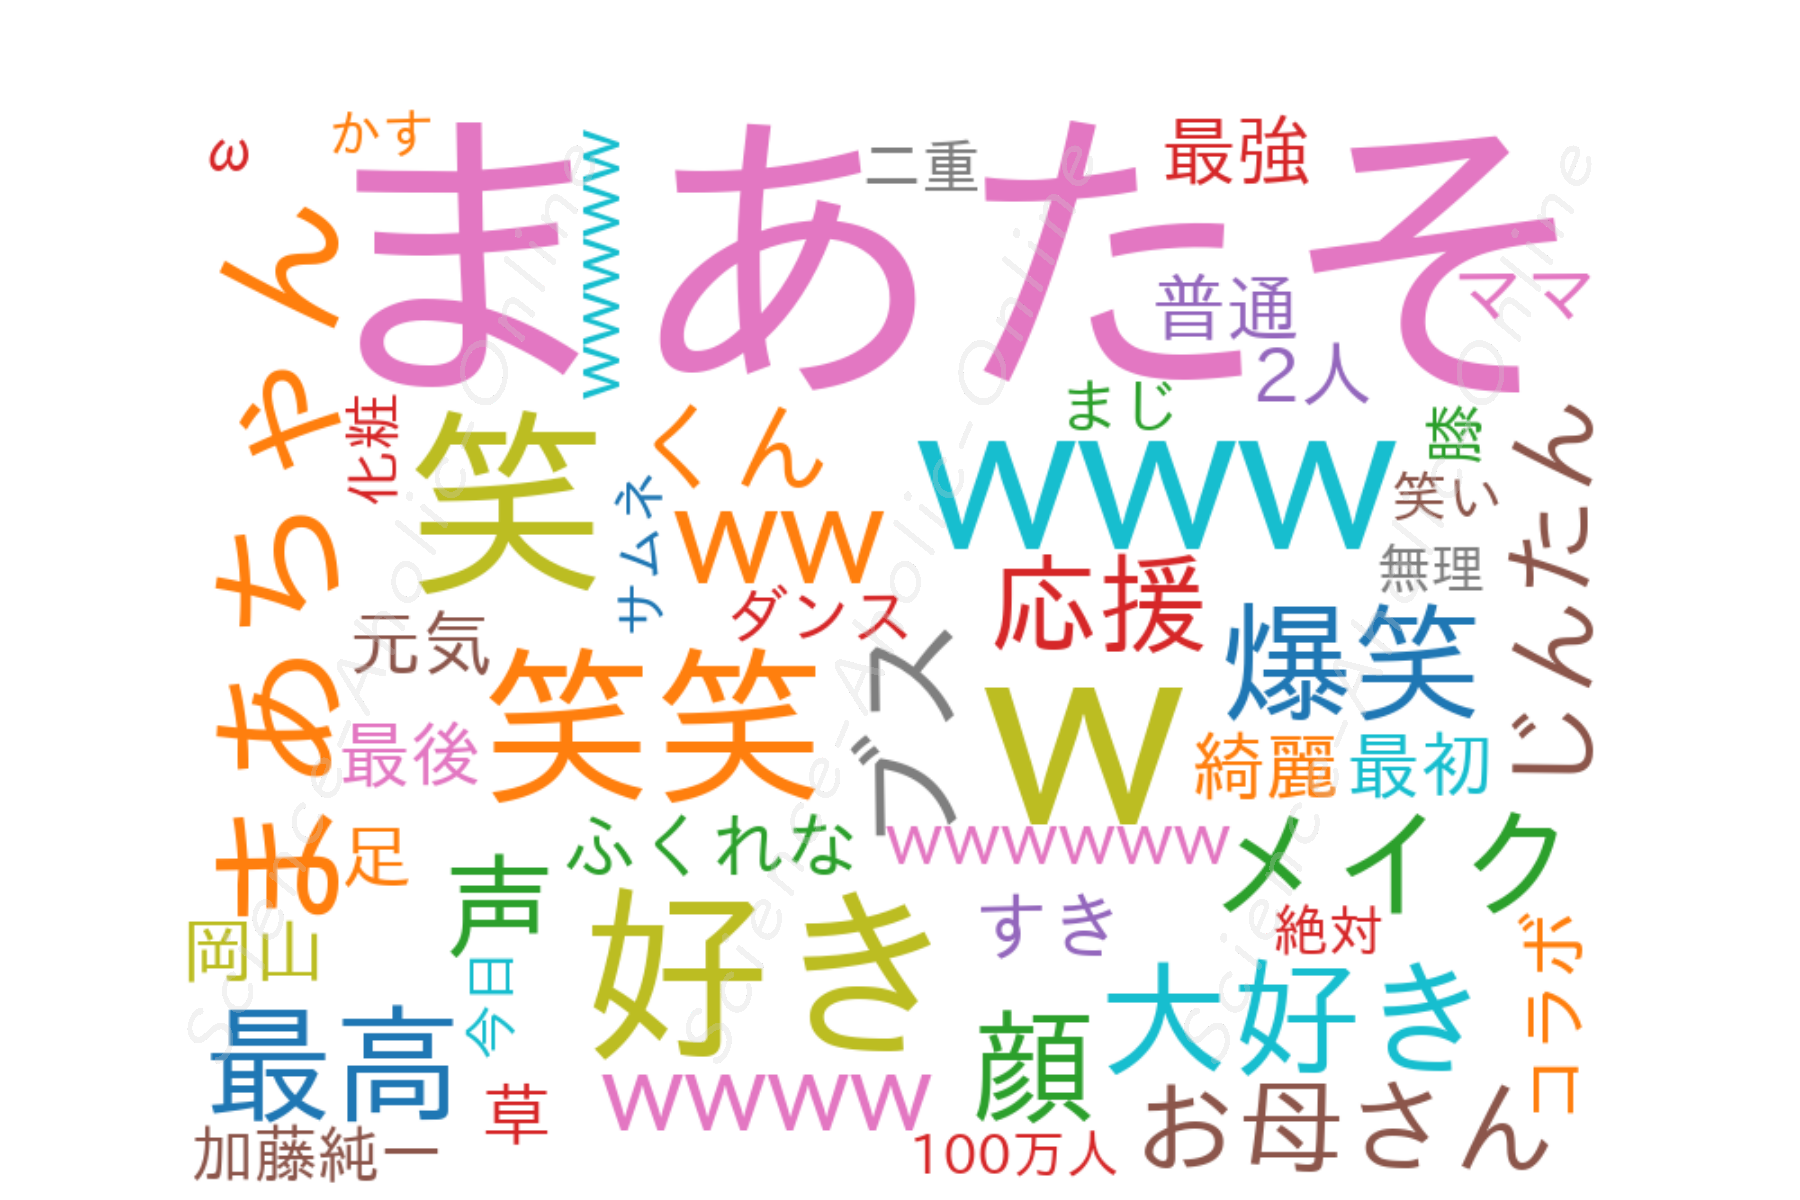 https://science-aholic-online.com/wp-content/uploads/2020/08/wordcloud_まあたそ.png